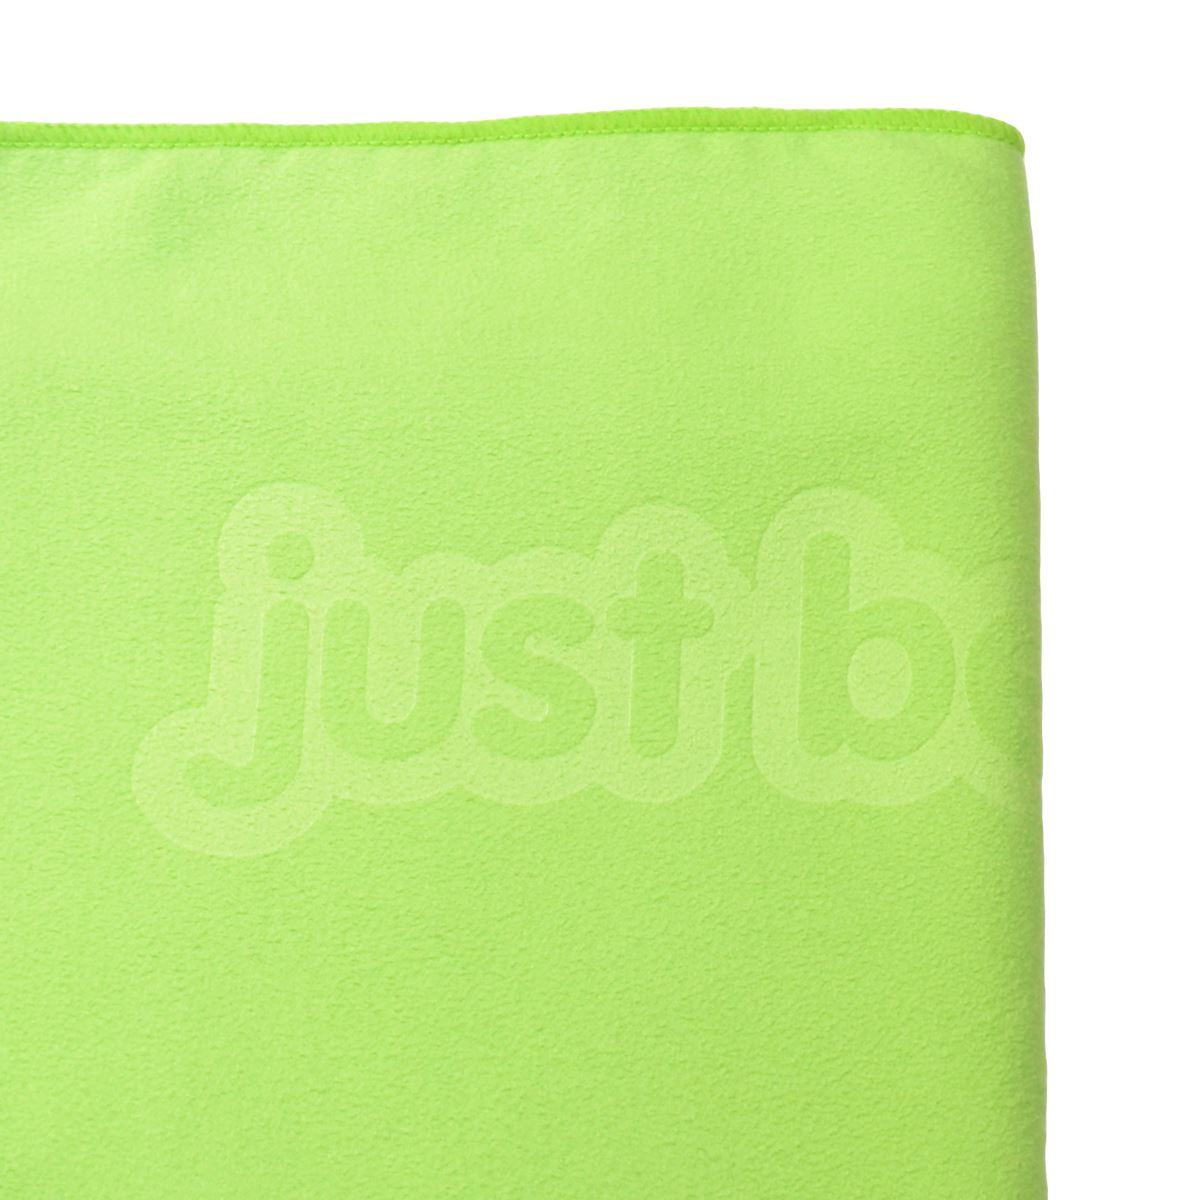 Compact-Large-Microfibre-Towel-Travel-Micro-Fibre-Bath-Camping-Sports-Gym-Yoga